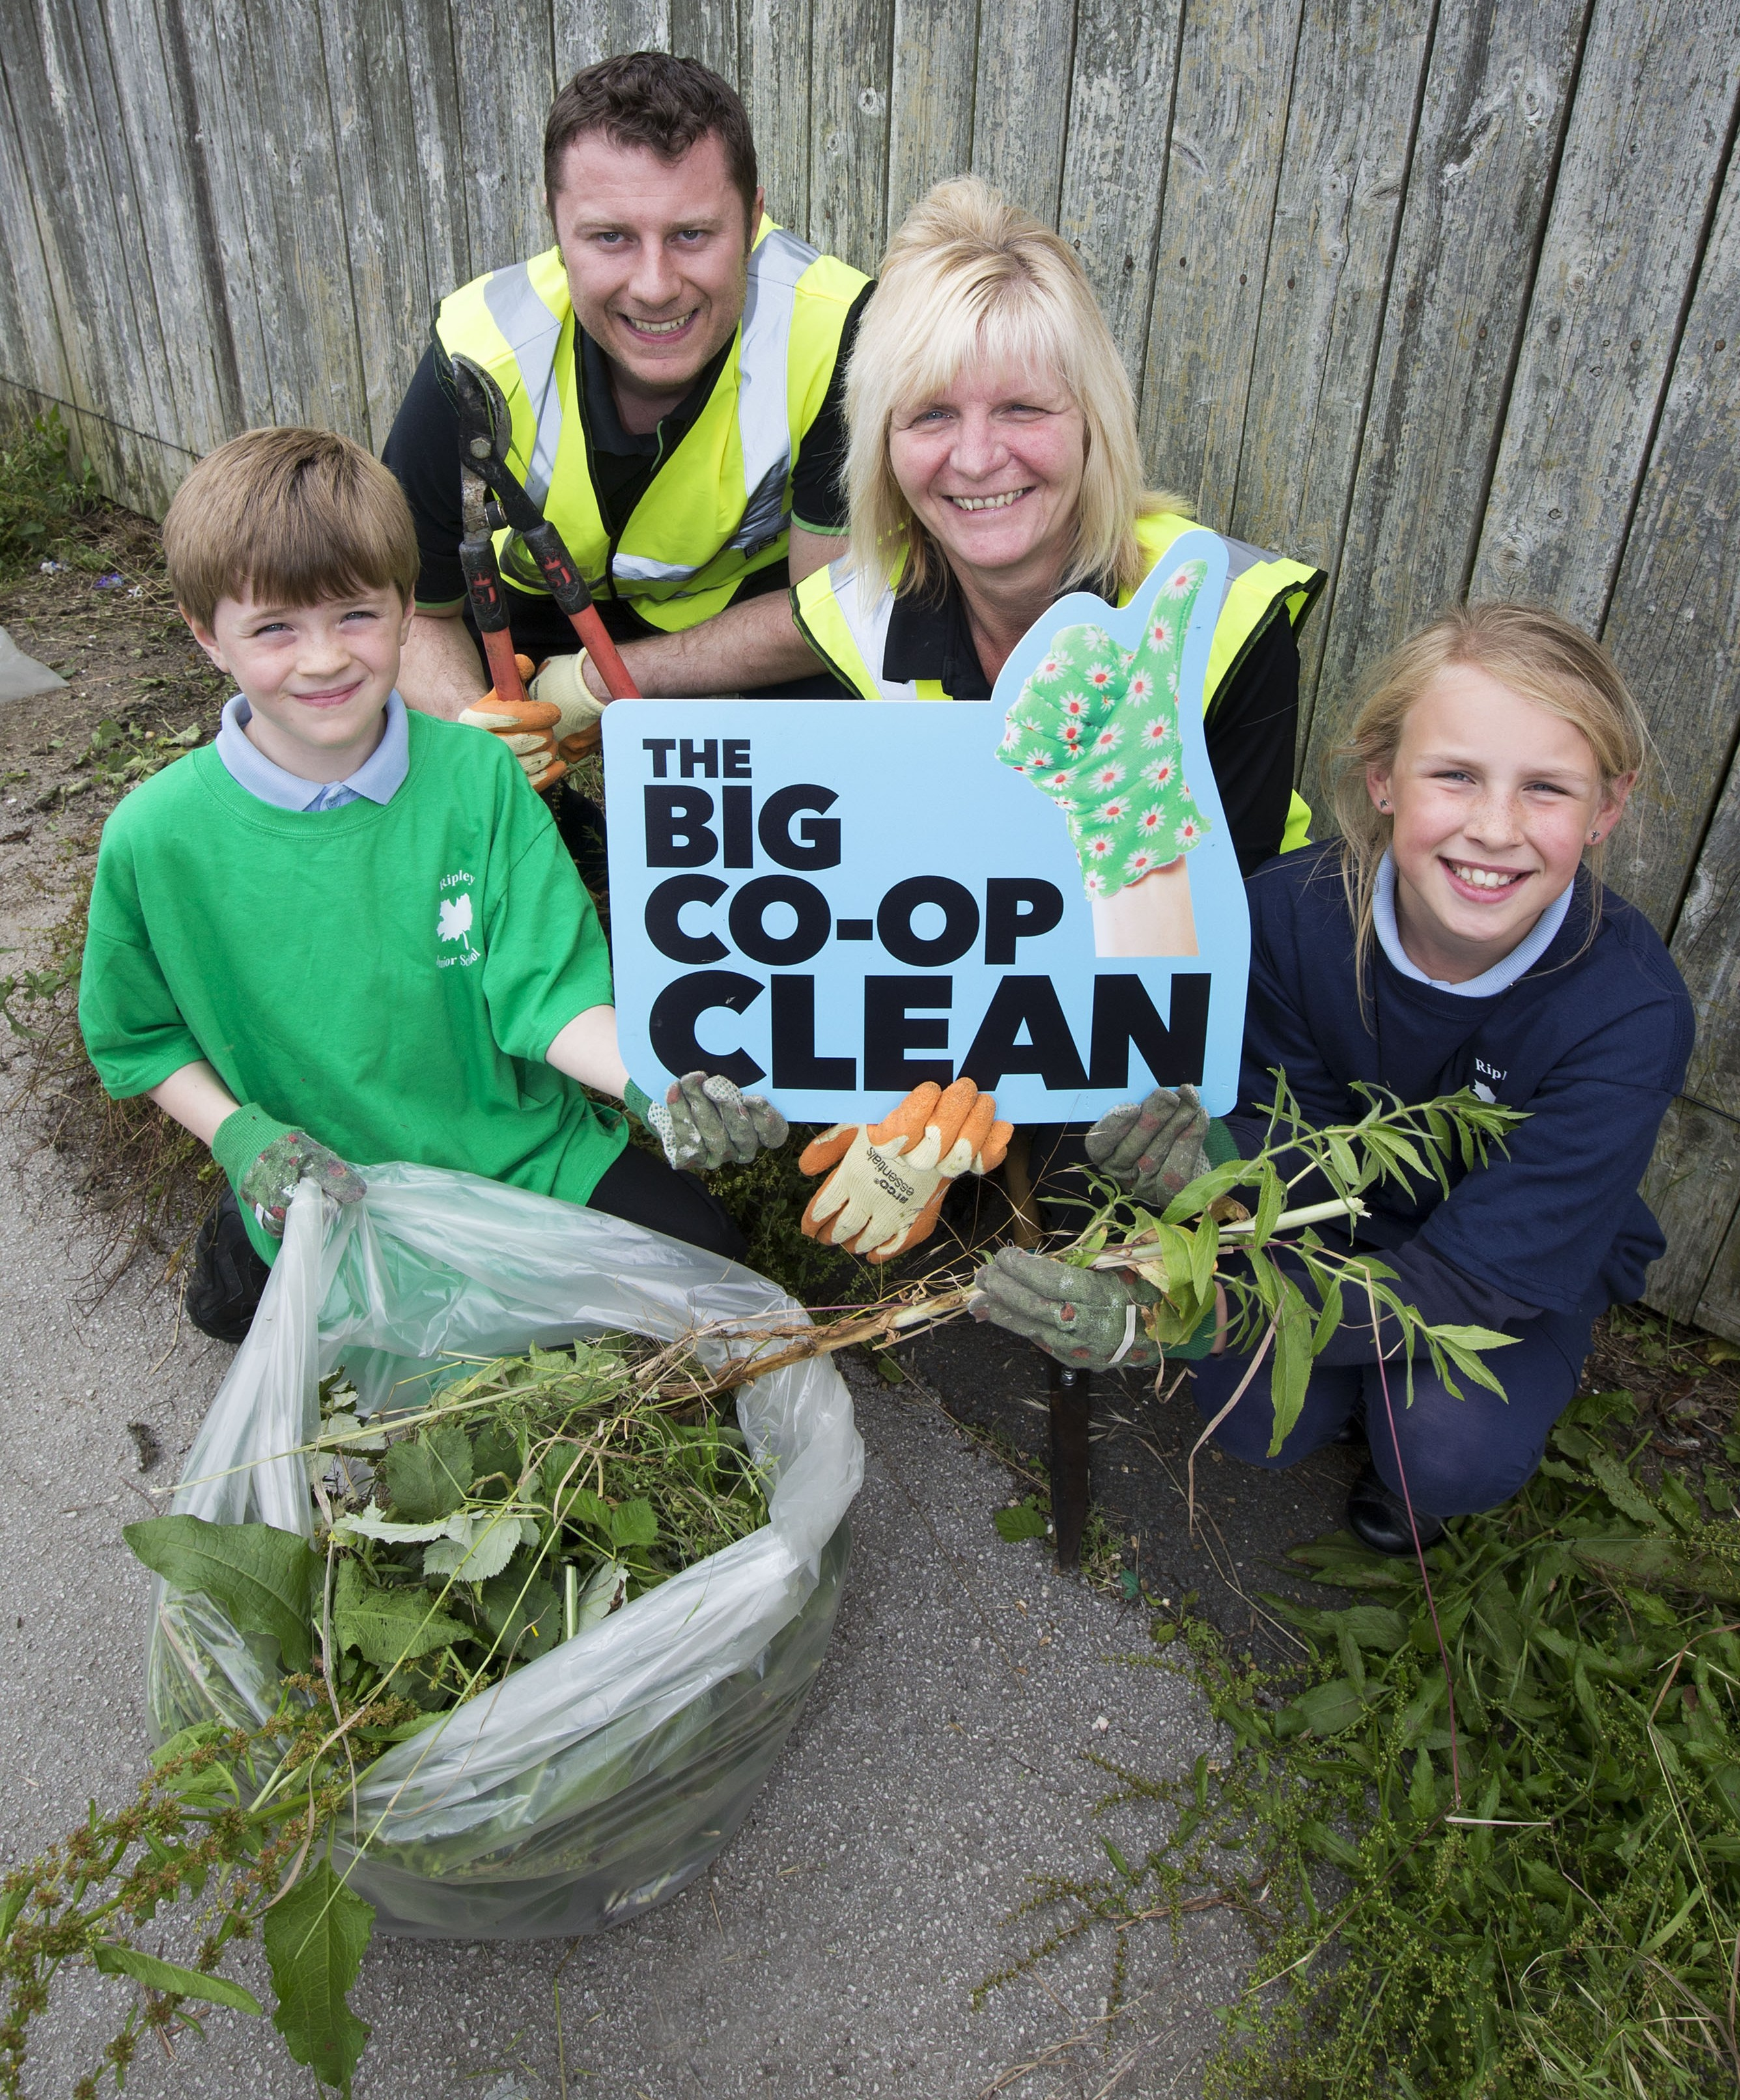 Central England's Big Co-op Clean in Ripley demonstrated how co-ops have working for the benefit of communities in their DNA